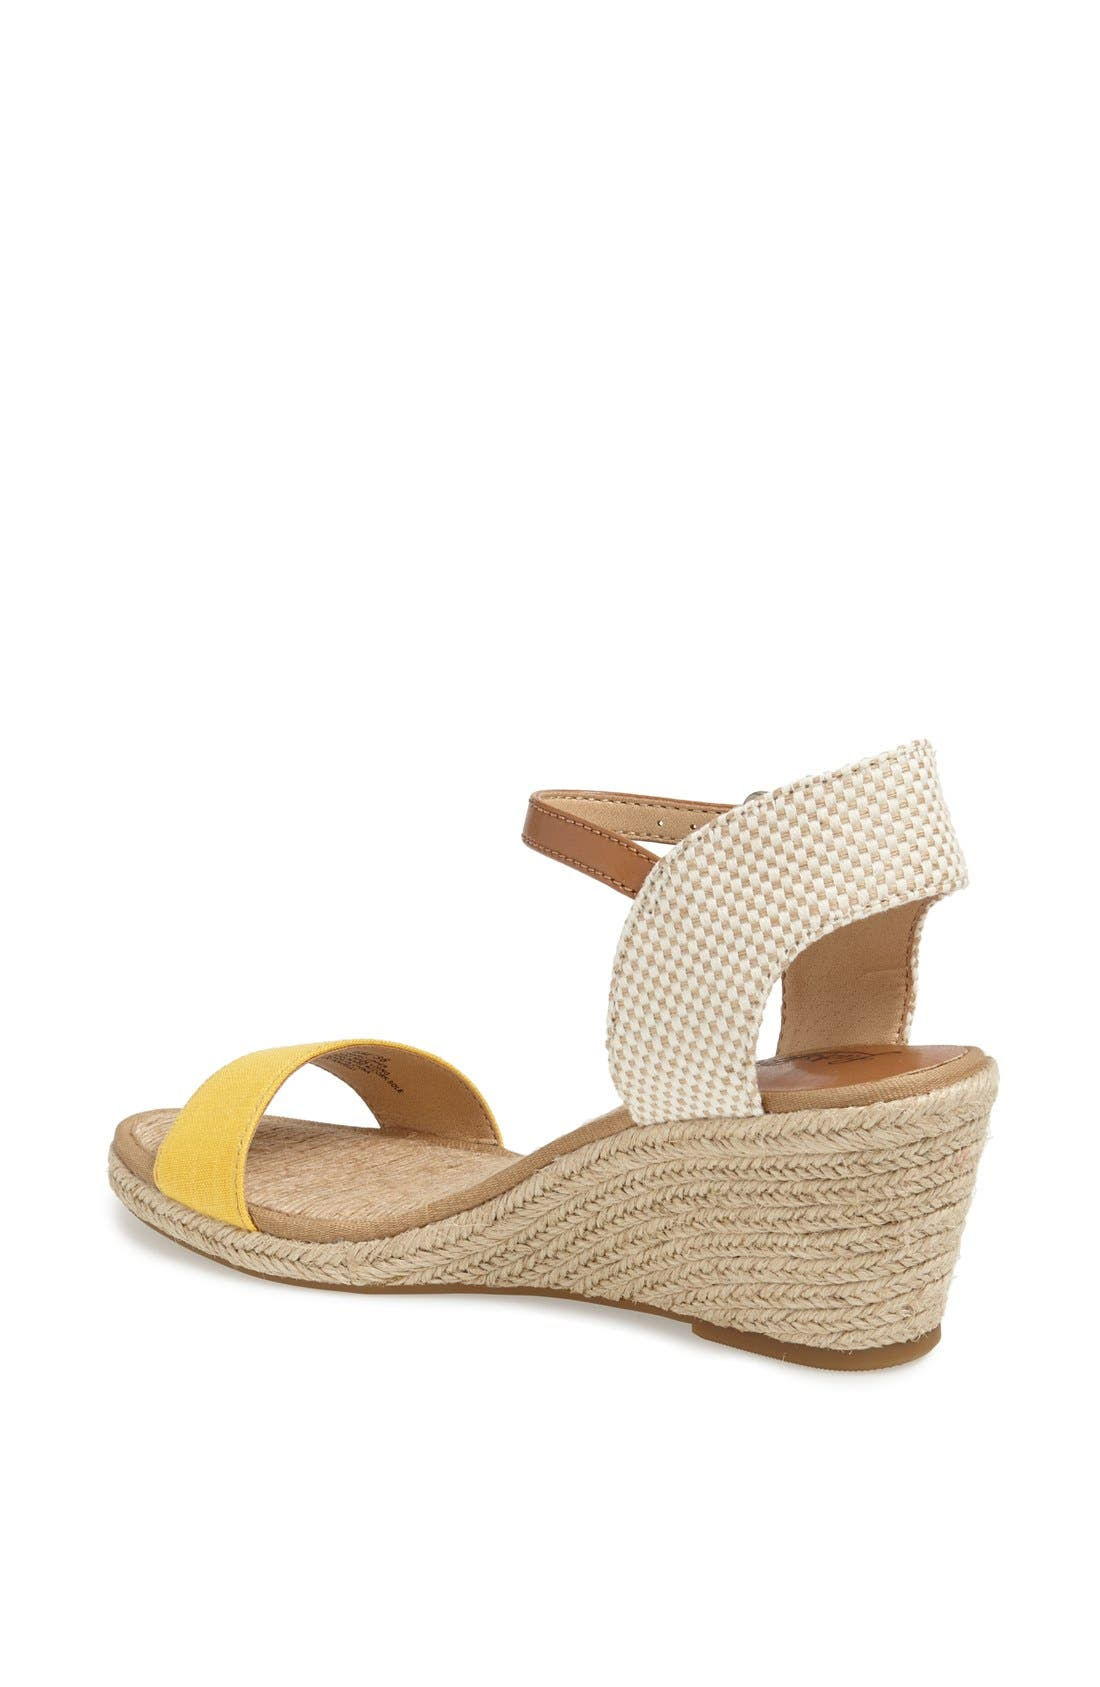 Alternate Image 3  - Lucky Brand 'Kavelli' Espadrille Wedge